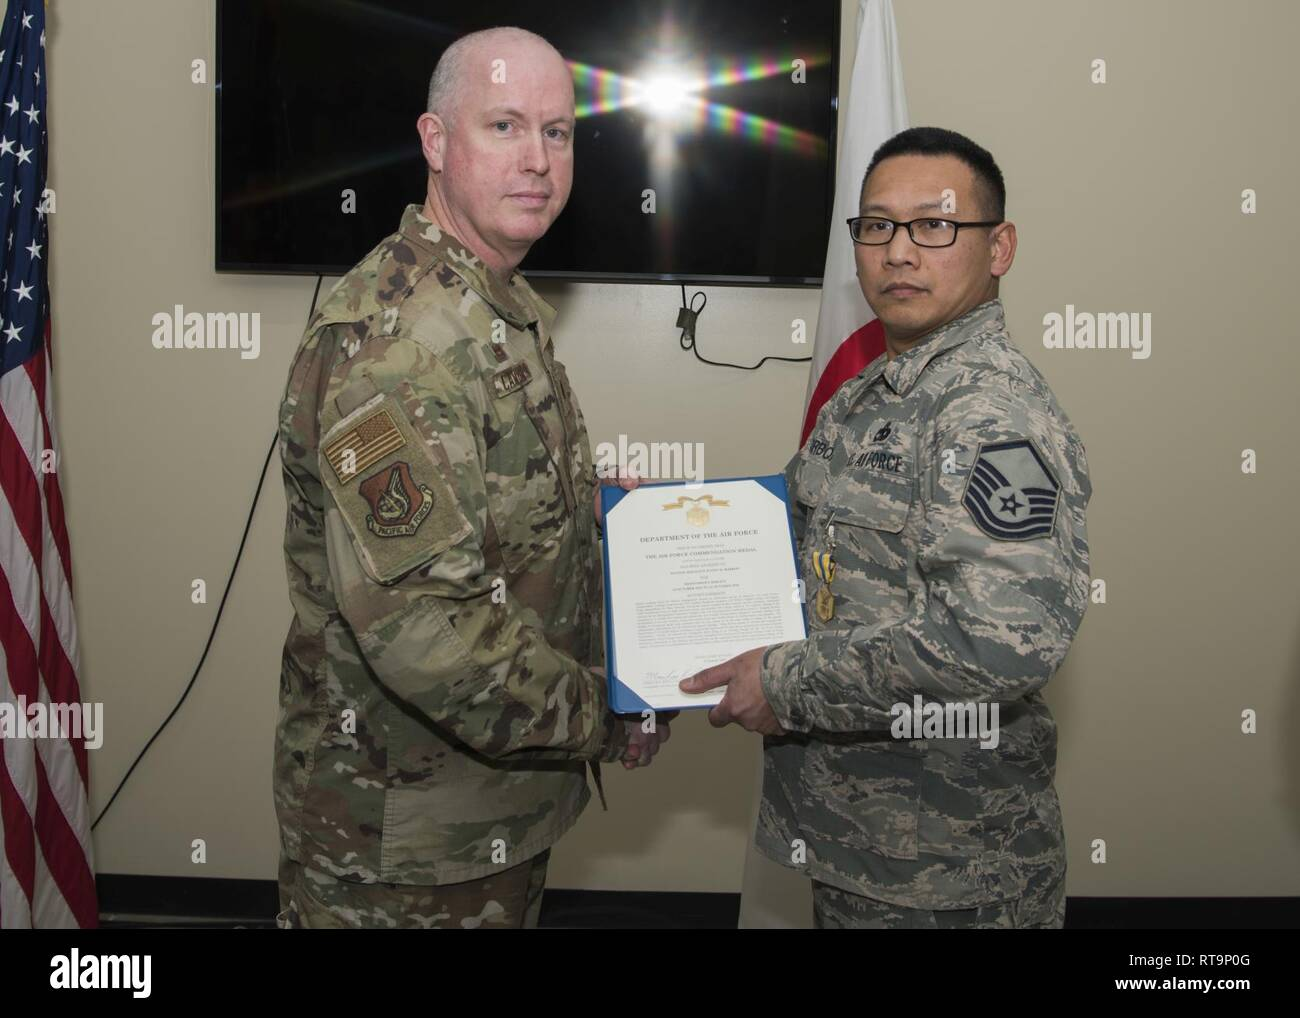 Airmen with the 35 Logistic Readiness Squadron receive a medal at Misawa Air Base, Japan, Feb. 1, 2019. Airmen that demonstration exceptional bravery and strength were pinned with a medal by the LRS commander. - Stock Image